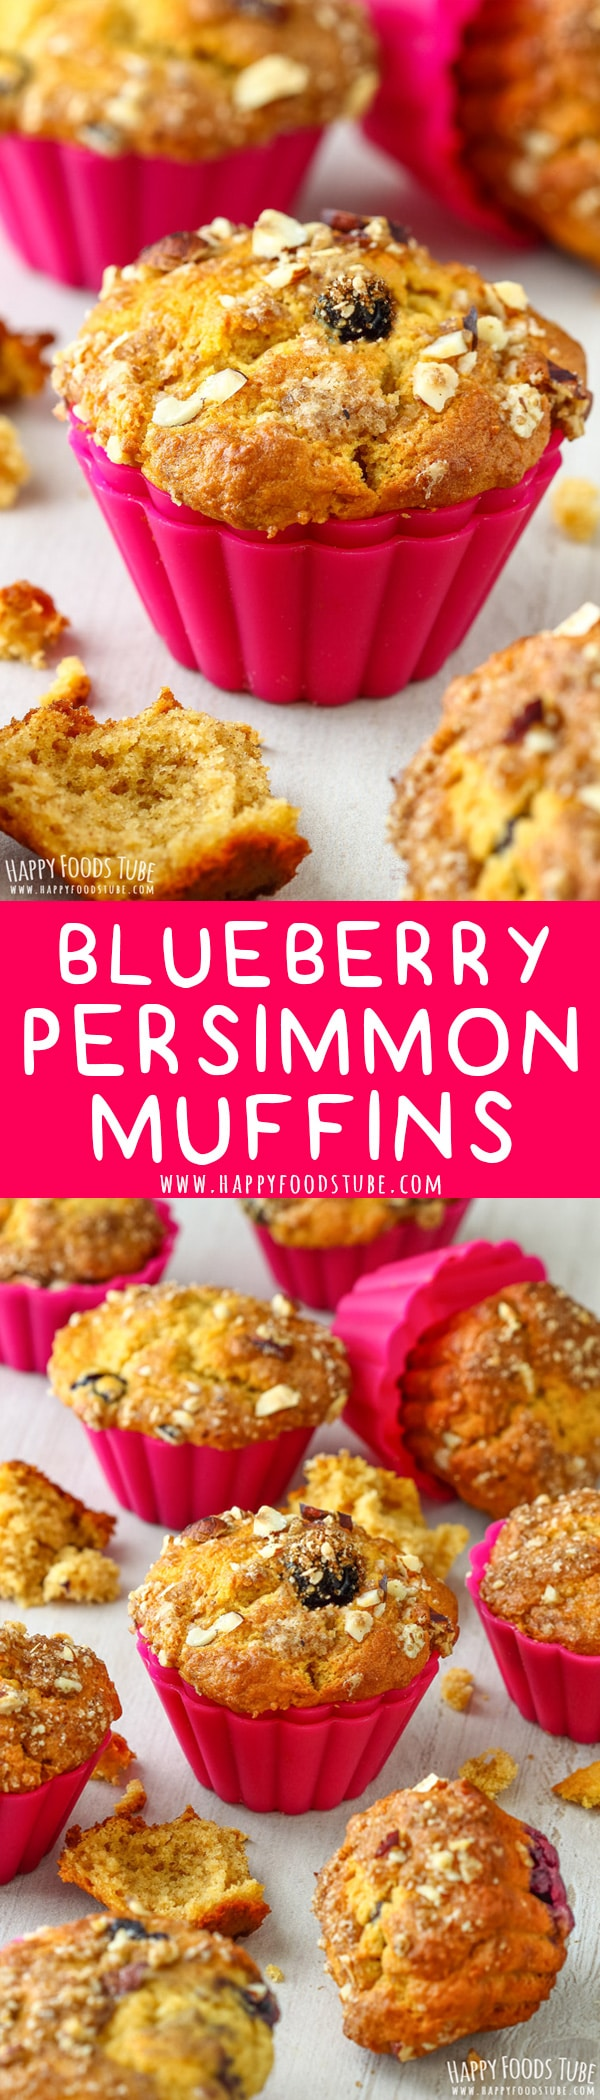 Soft and moist these blueberry persimmon muffins are perfect for breakfast, brunch or as a snack. Whole blueberries and hazelnut streusel make them extra delicious. #persimmon #blueberry #muffins #desserts #recipes #greekyogurt #hazelnut #streusel #baking #breakfast